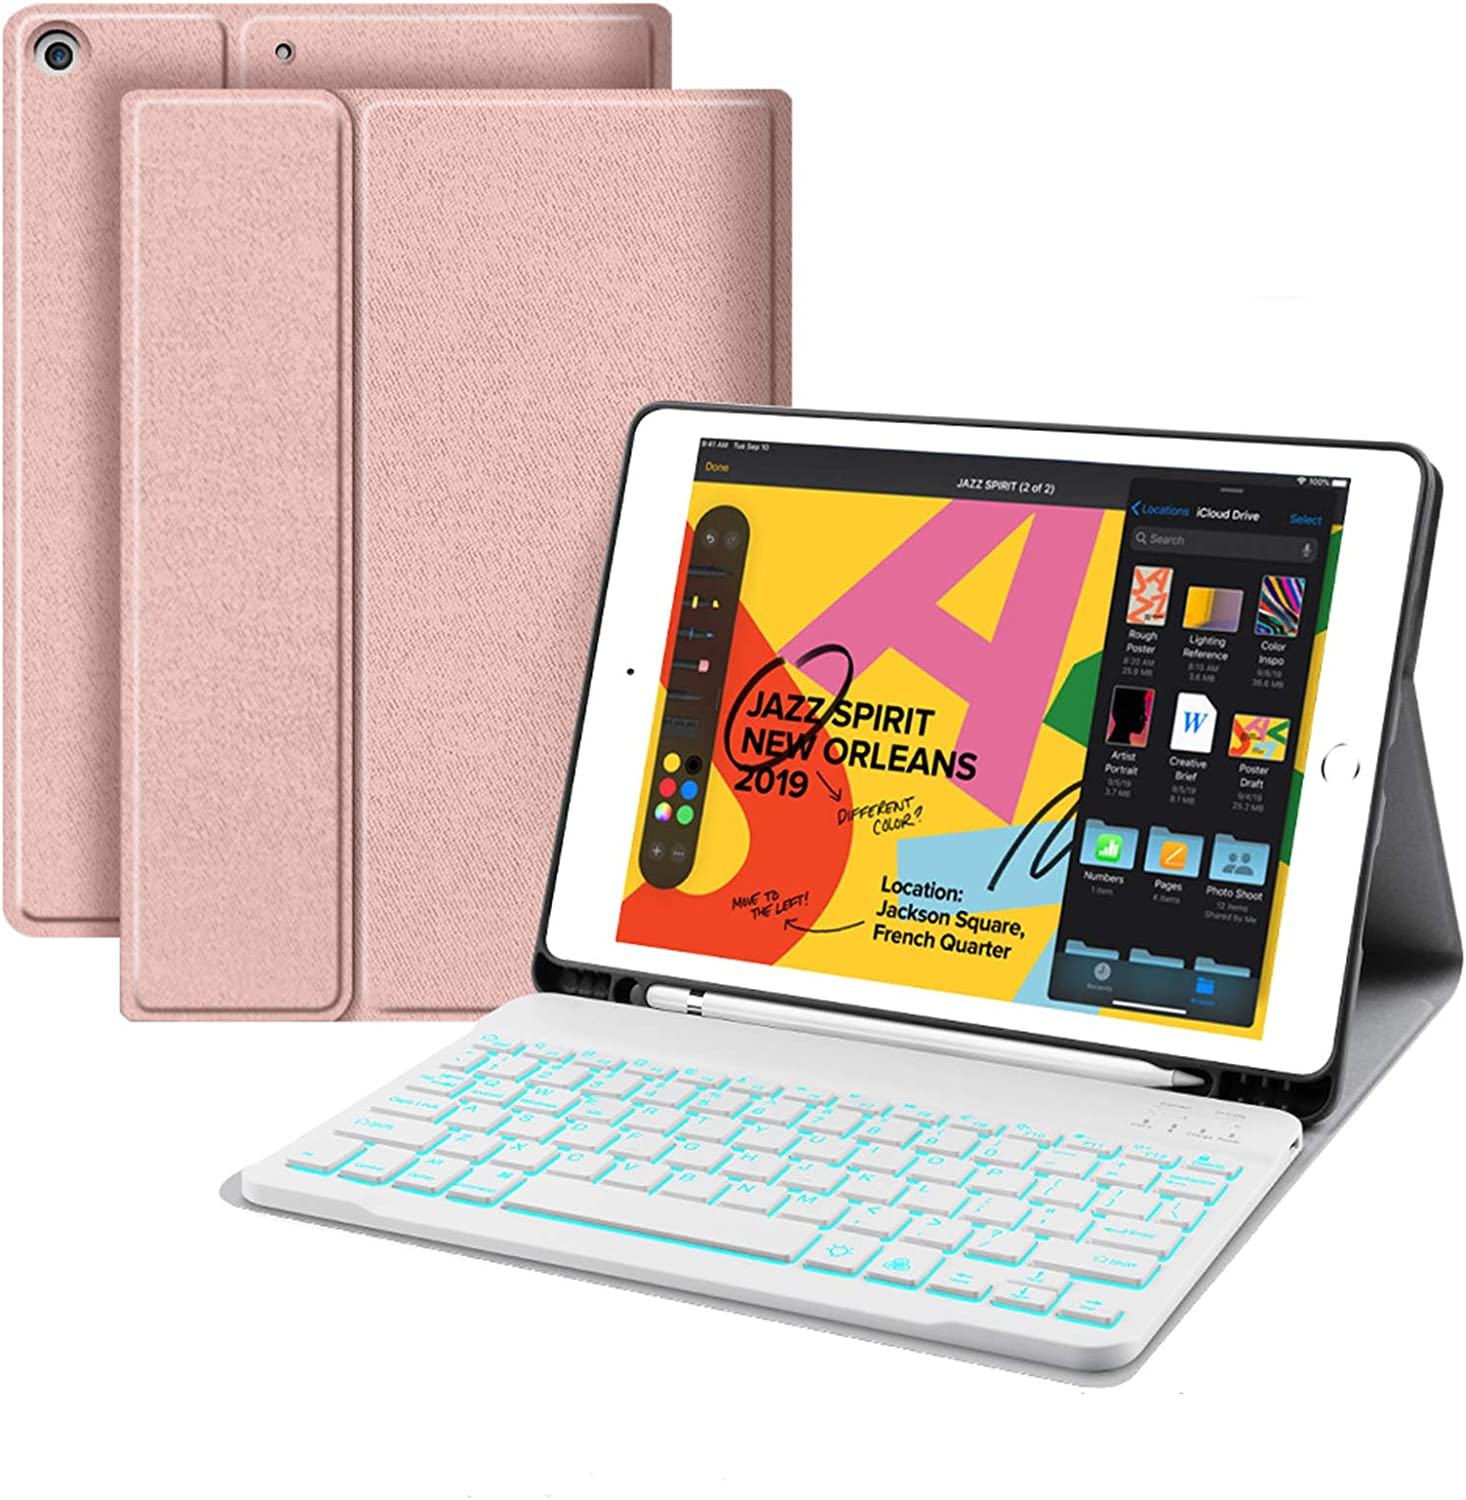 """Backlit Keyboard Case for iPad 10.2 8th 7th Generation - JUQITECH Case with BT Keyboard for iPad 10.2"""" 8th 2020 7th 2019 Wireless Tablet Detachable Keyboard Stand Cover with Pencil Holder, Rose Gold"""